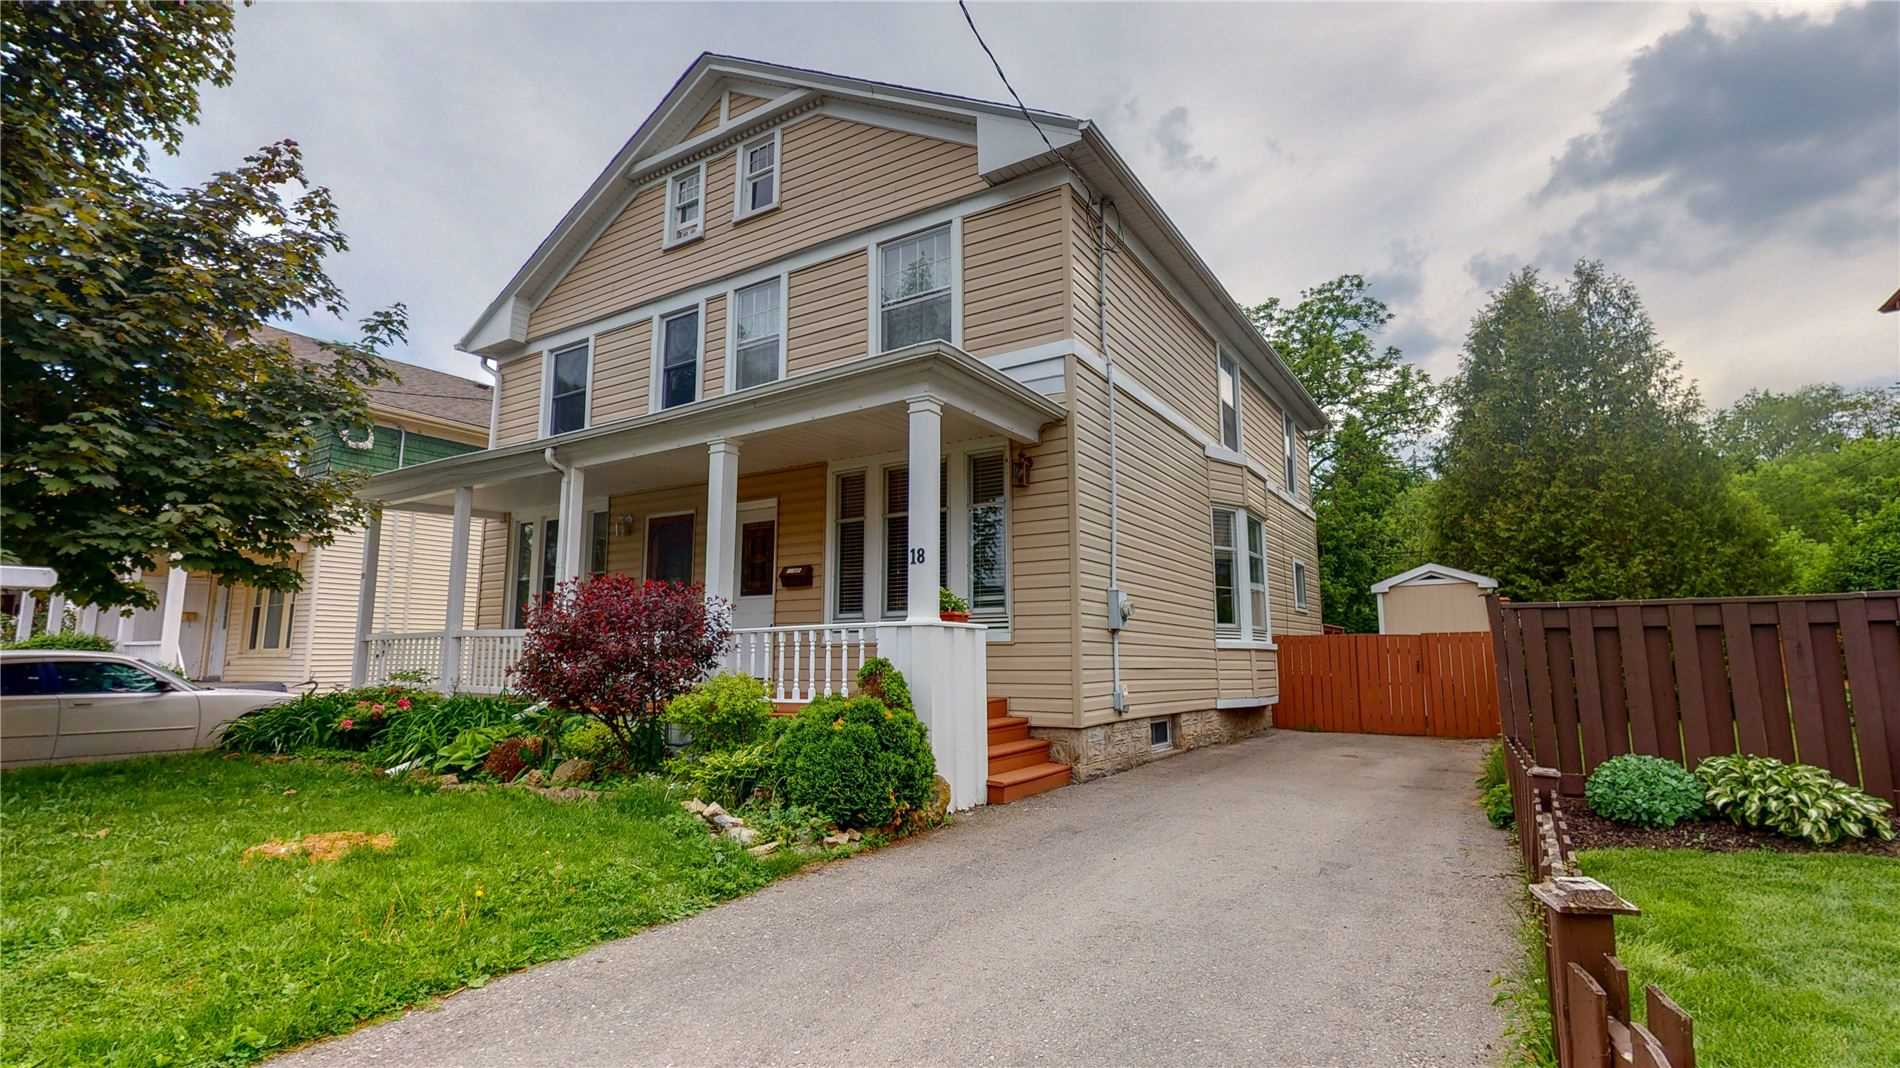 pictures of house for sale MLS: X4783077 located at 18 Richardson St, Cambridge N1S2P3